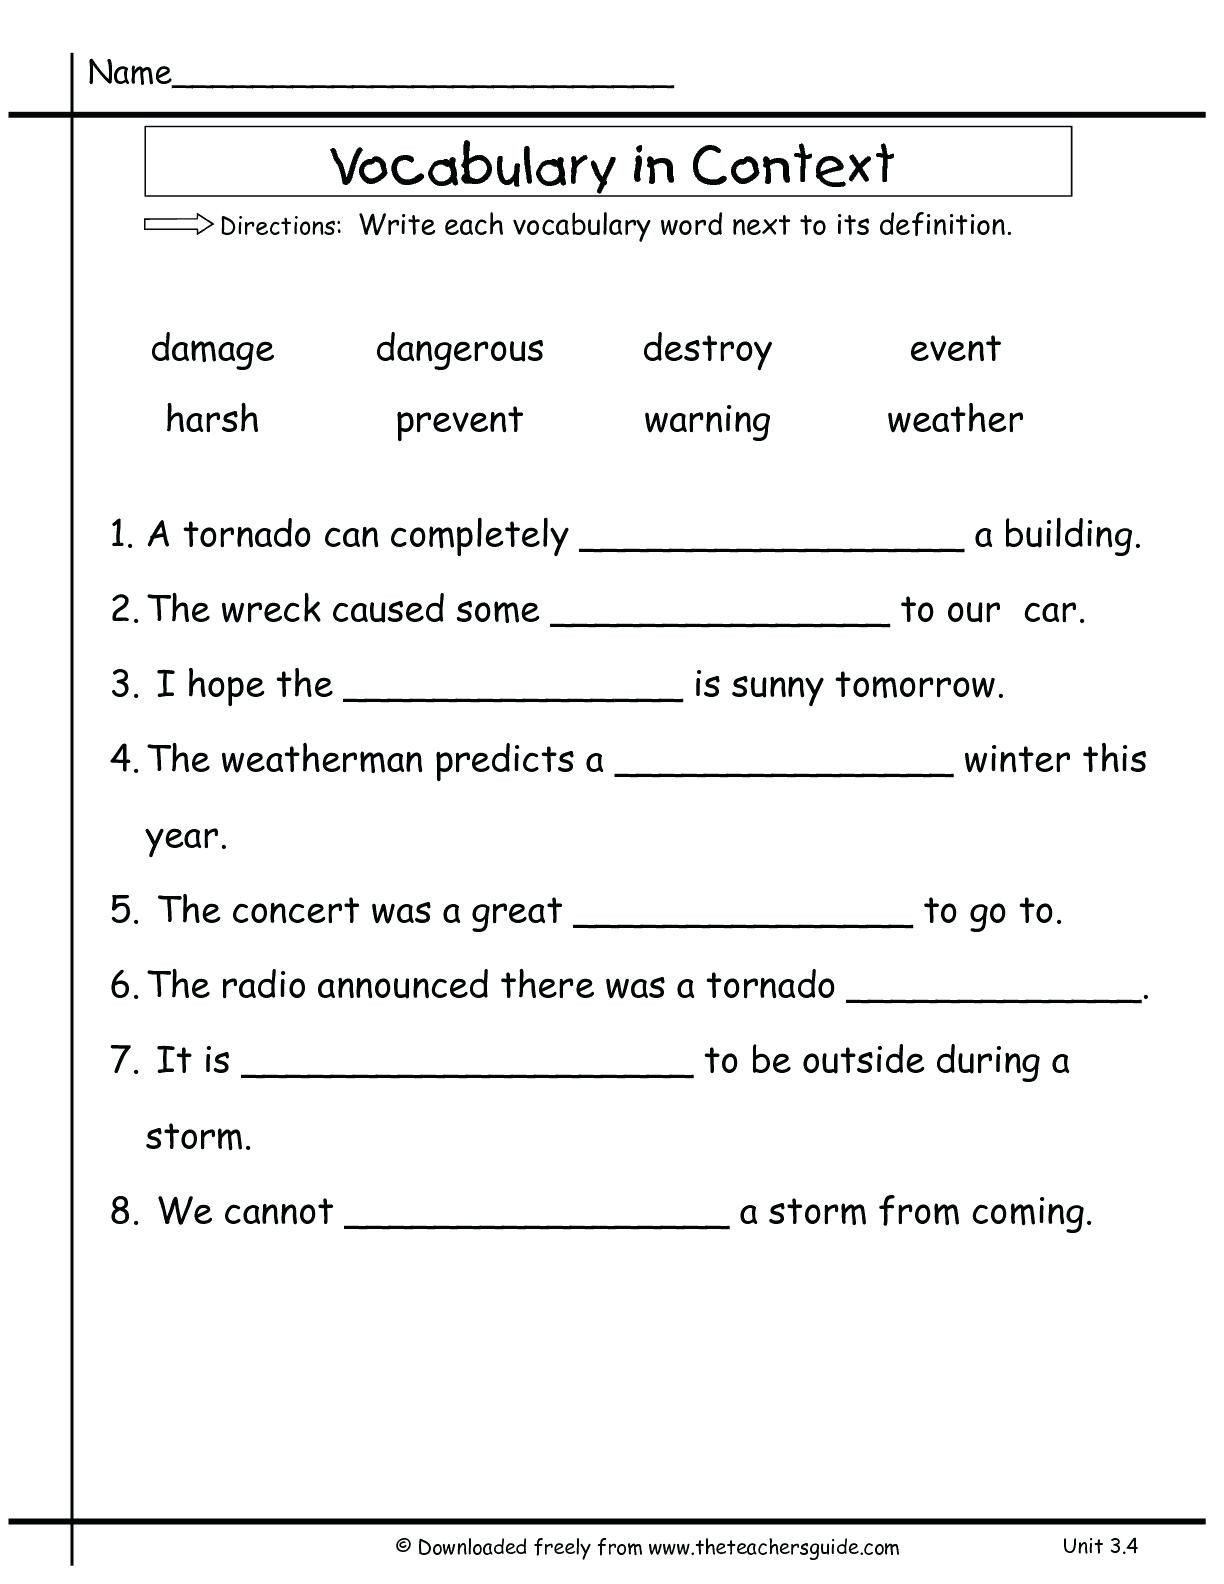 5th Grade Vocabulary Worksheet 3rd Grade Vocabulary Worksheets for Educations 3rd Grade